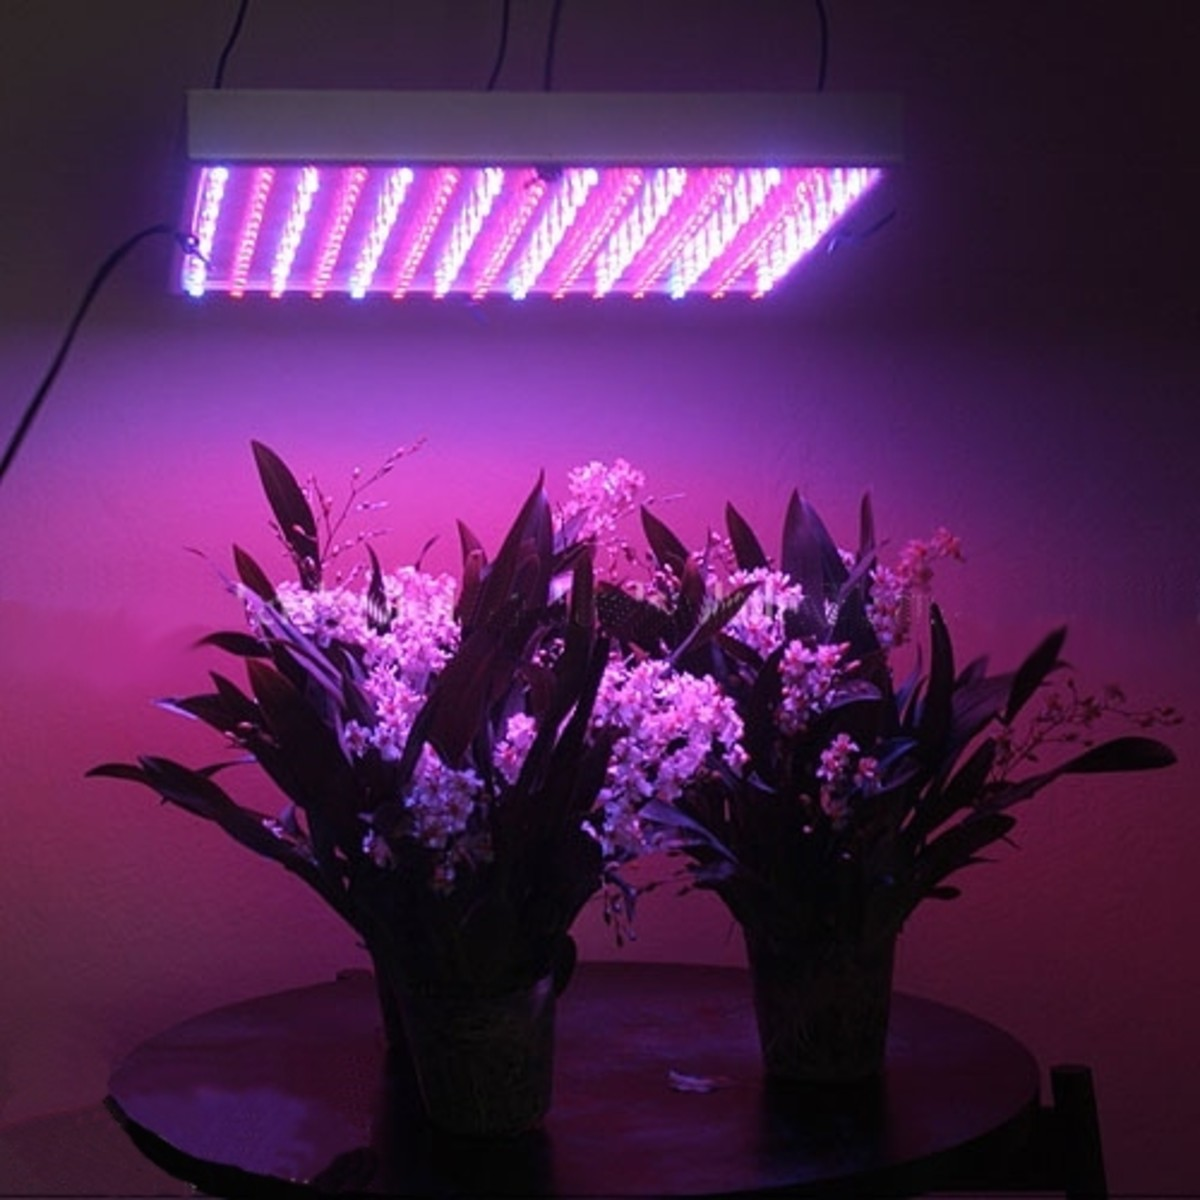 LED grow lights that can be used for growing vegetables indoors.